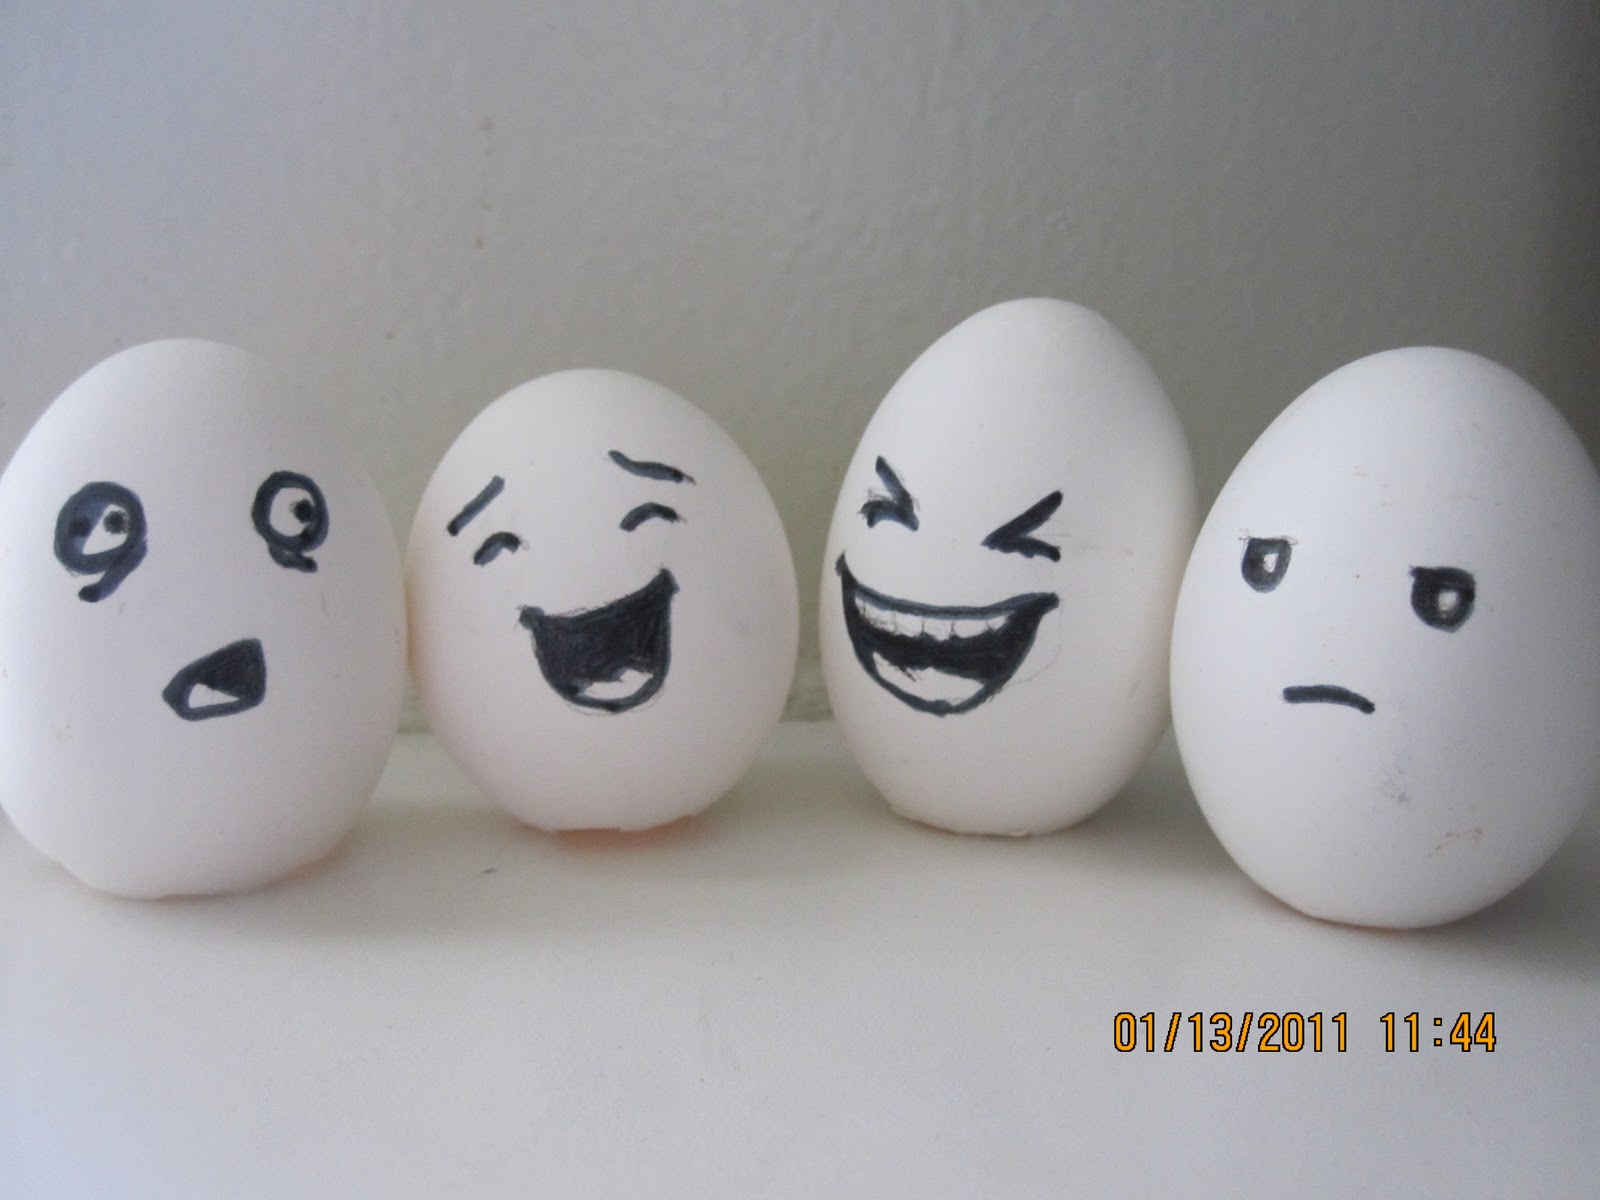 Picture Gallery: Funny Egg Faces Gallery, Eggcellent ...  Picture Gallery...